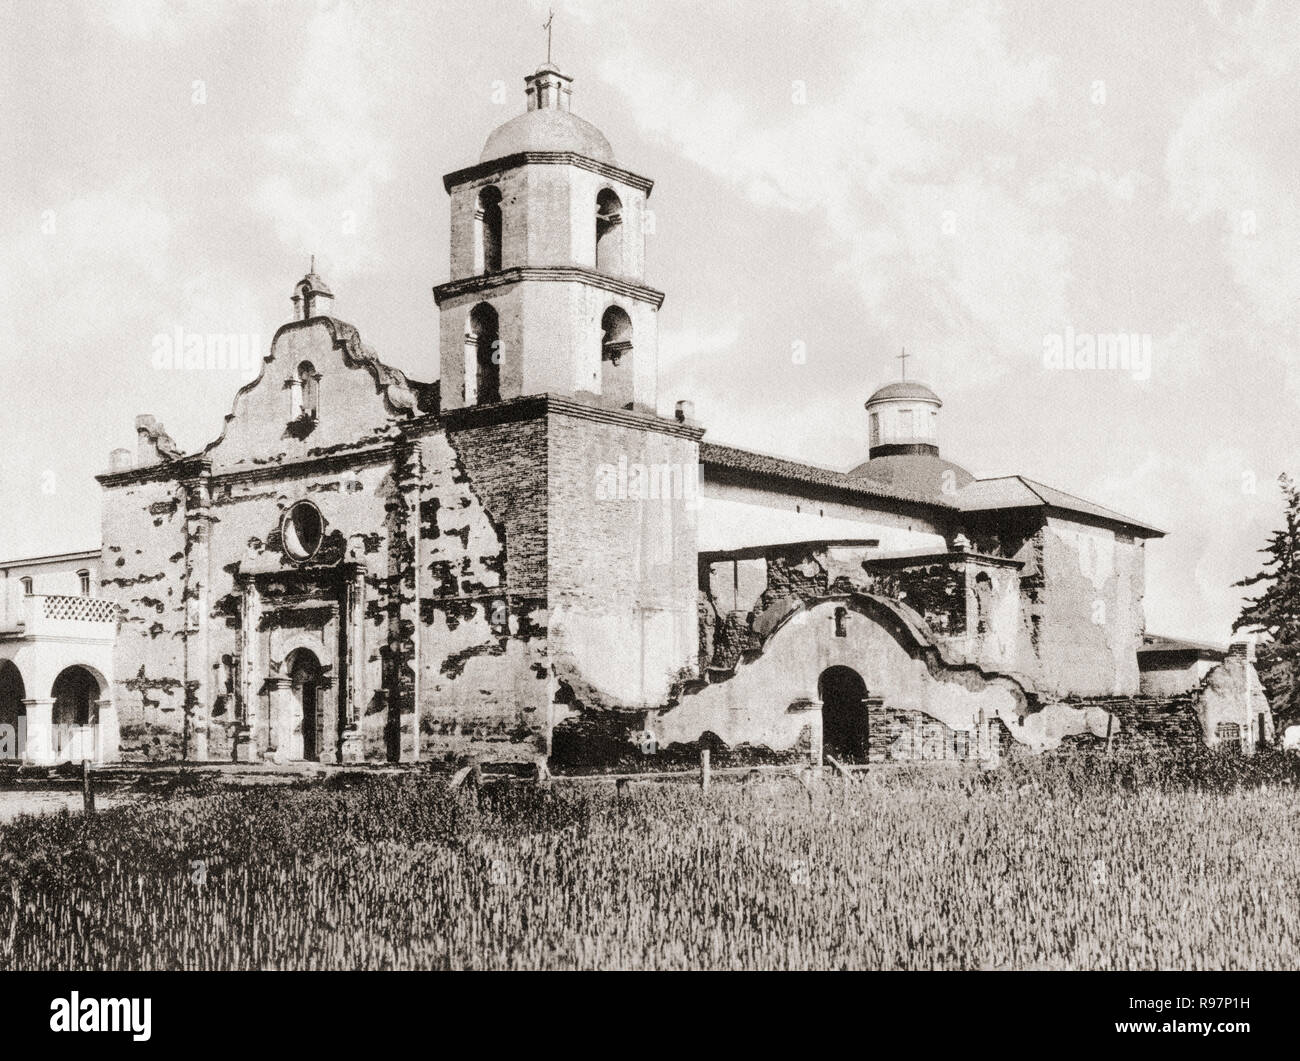 Mission San Luis Rey de Francia, San Luis Rey, San Diego County, California, United States of America, c. 1915.  The mission was founded on June 13, 1798 by Padre Fermín Lasuén.  From Wonderful California, published 1915. - Stock Image